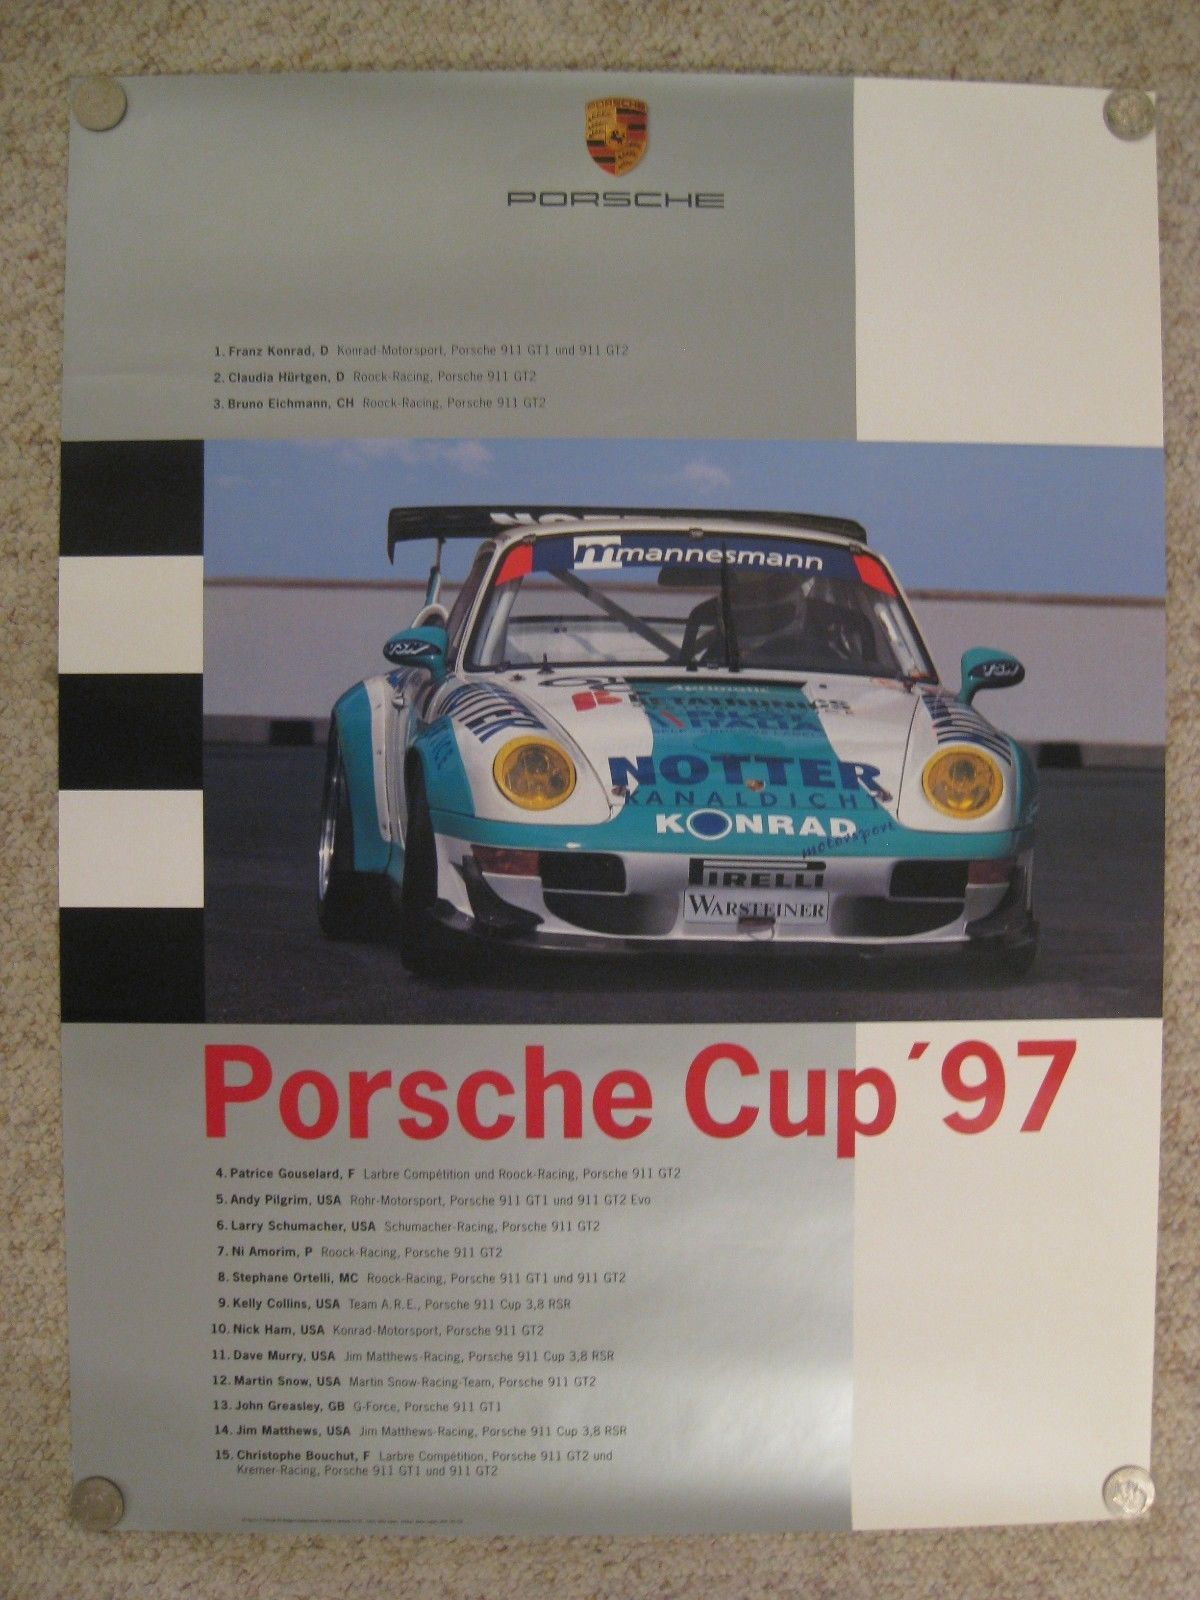 dc39472d1f992129b263c56e8ca4f0eb Marvelous Porsche 911 Gt2 for Sale Usa Cars Trend